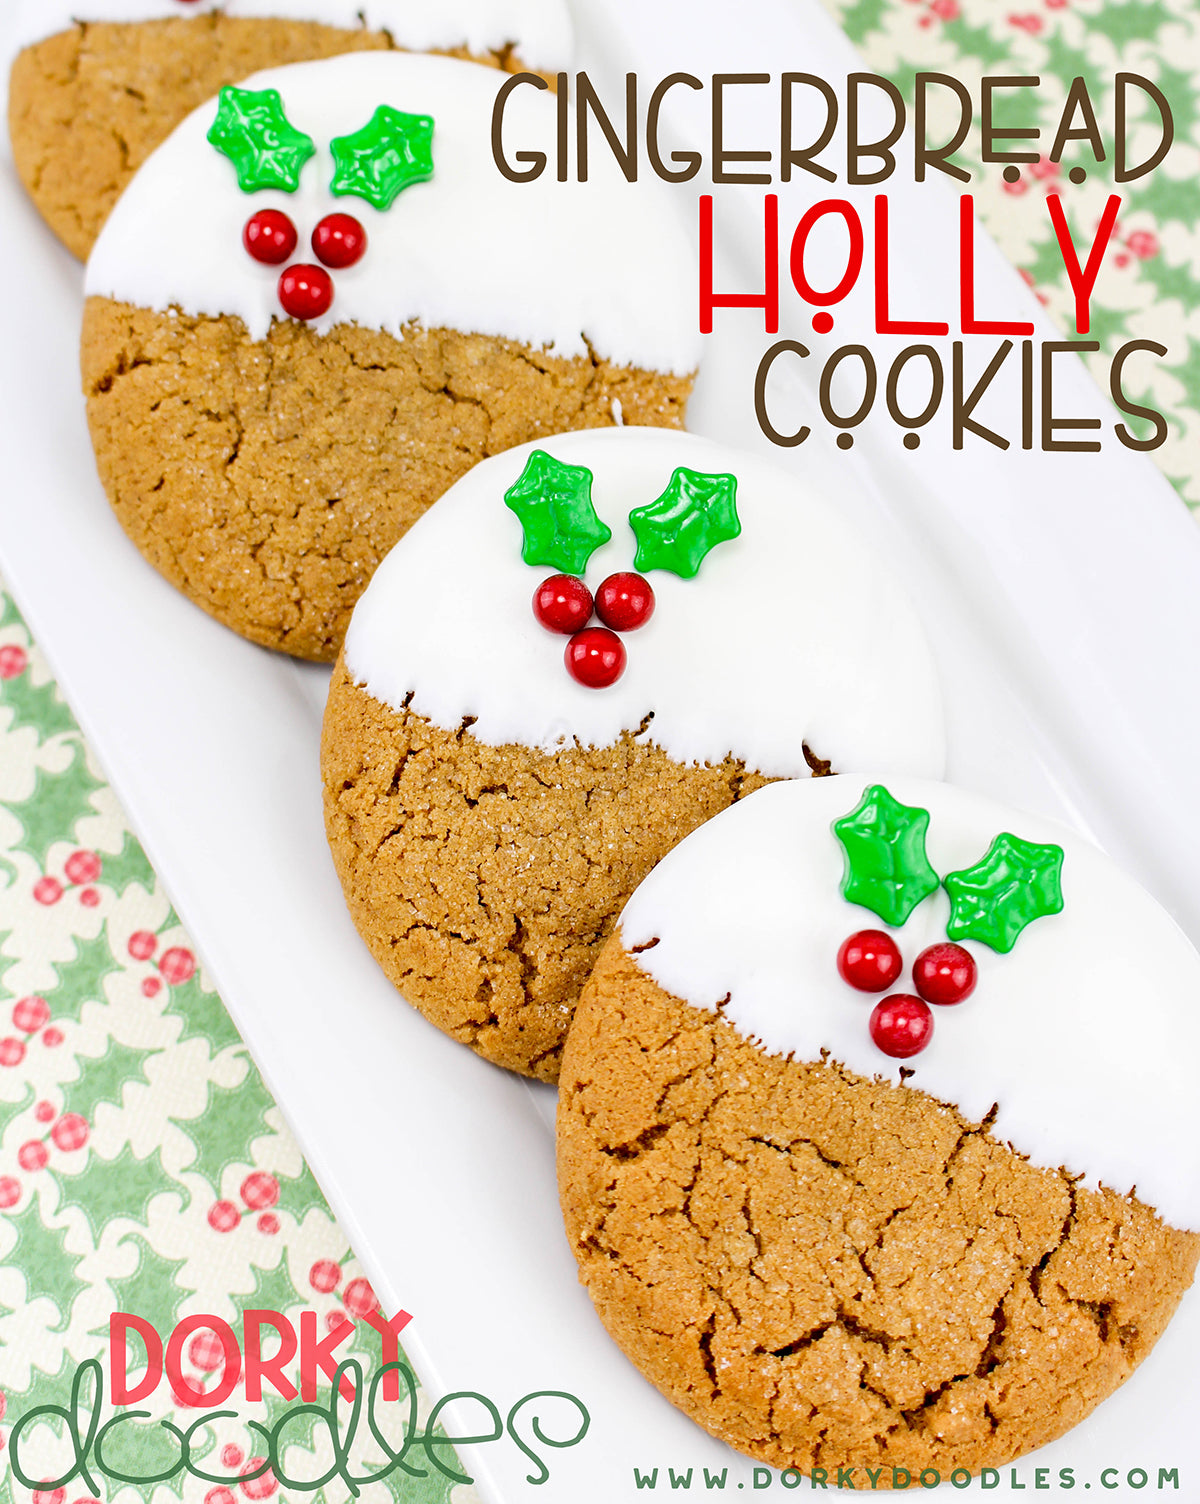 gingerbread holly Christmas cookies recipe